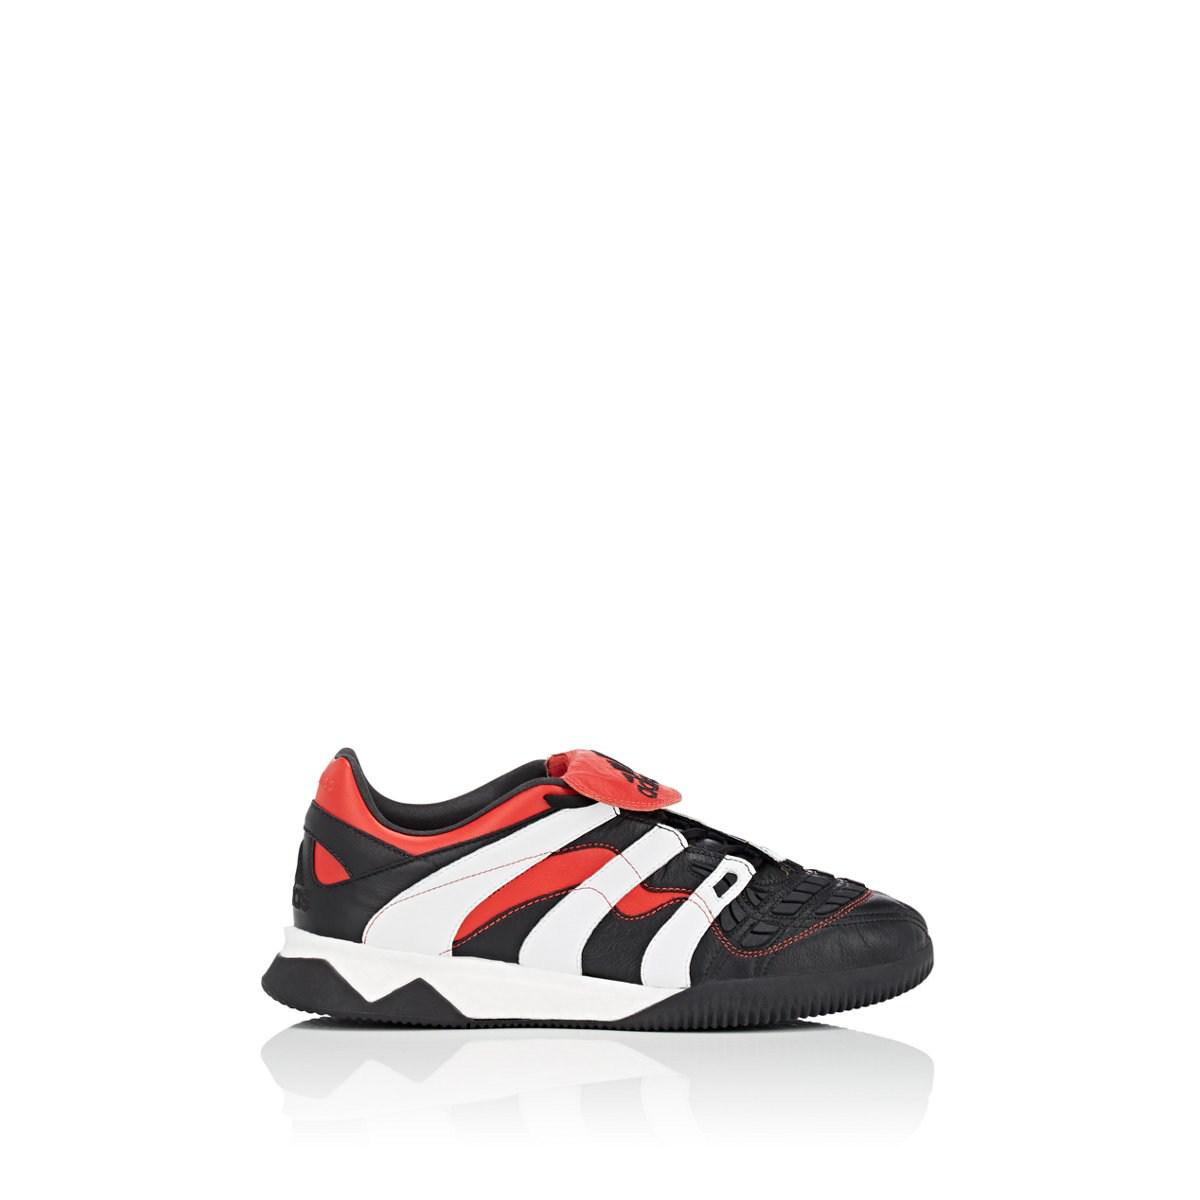 quality design 837d3 42577 ... sweden lyst adidas predator accelerator tr sneakers in black for men  ccc9c 5177d